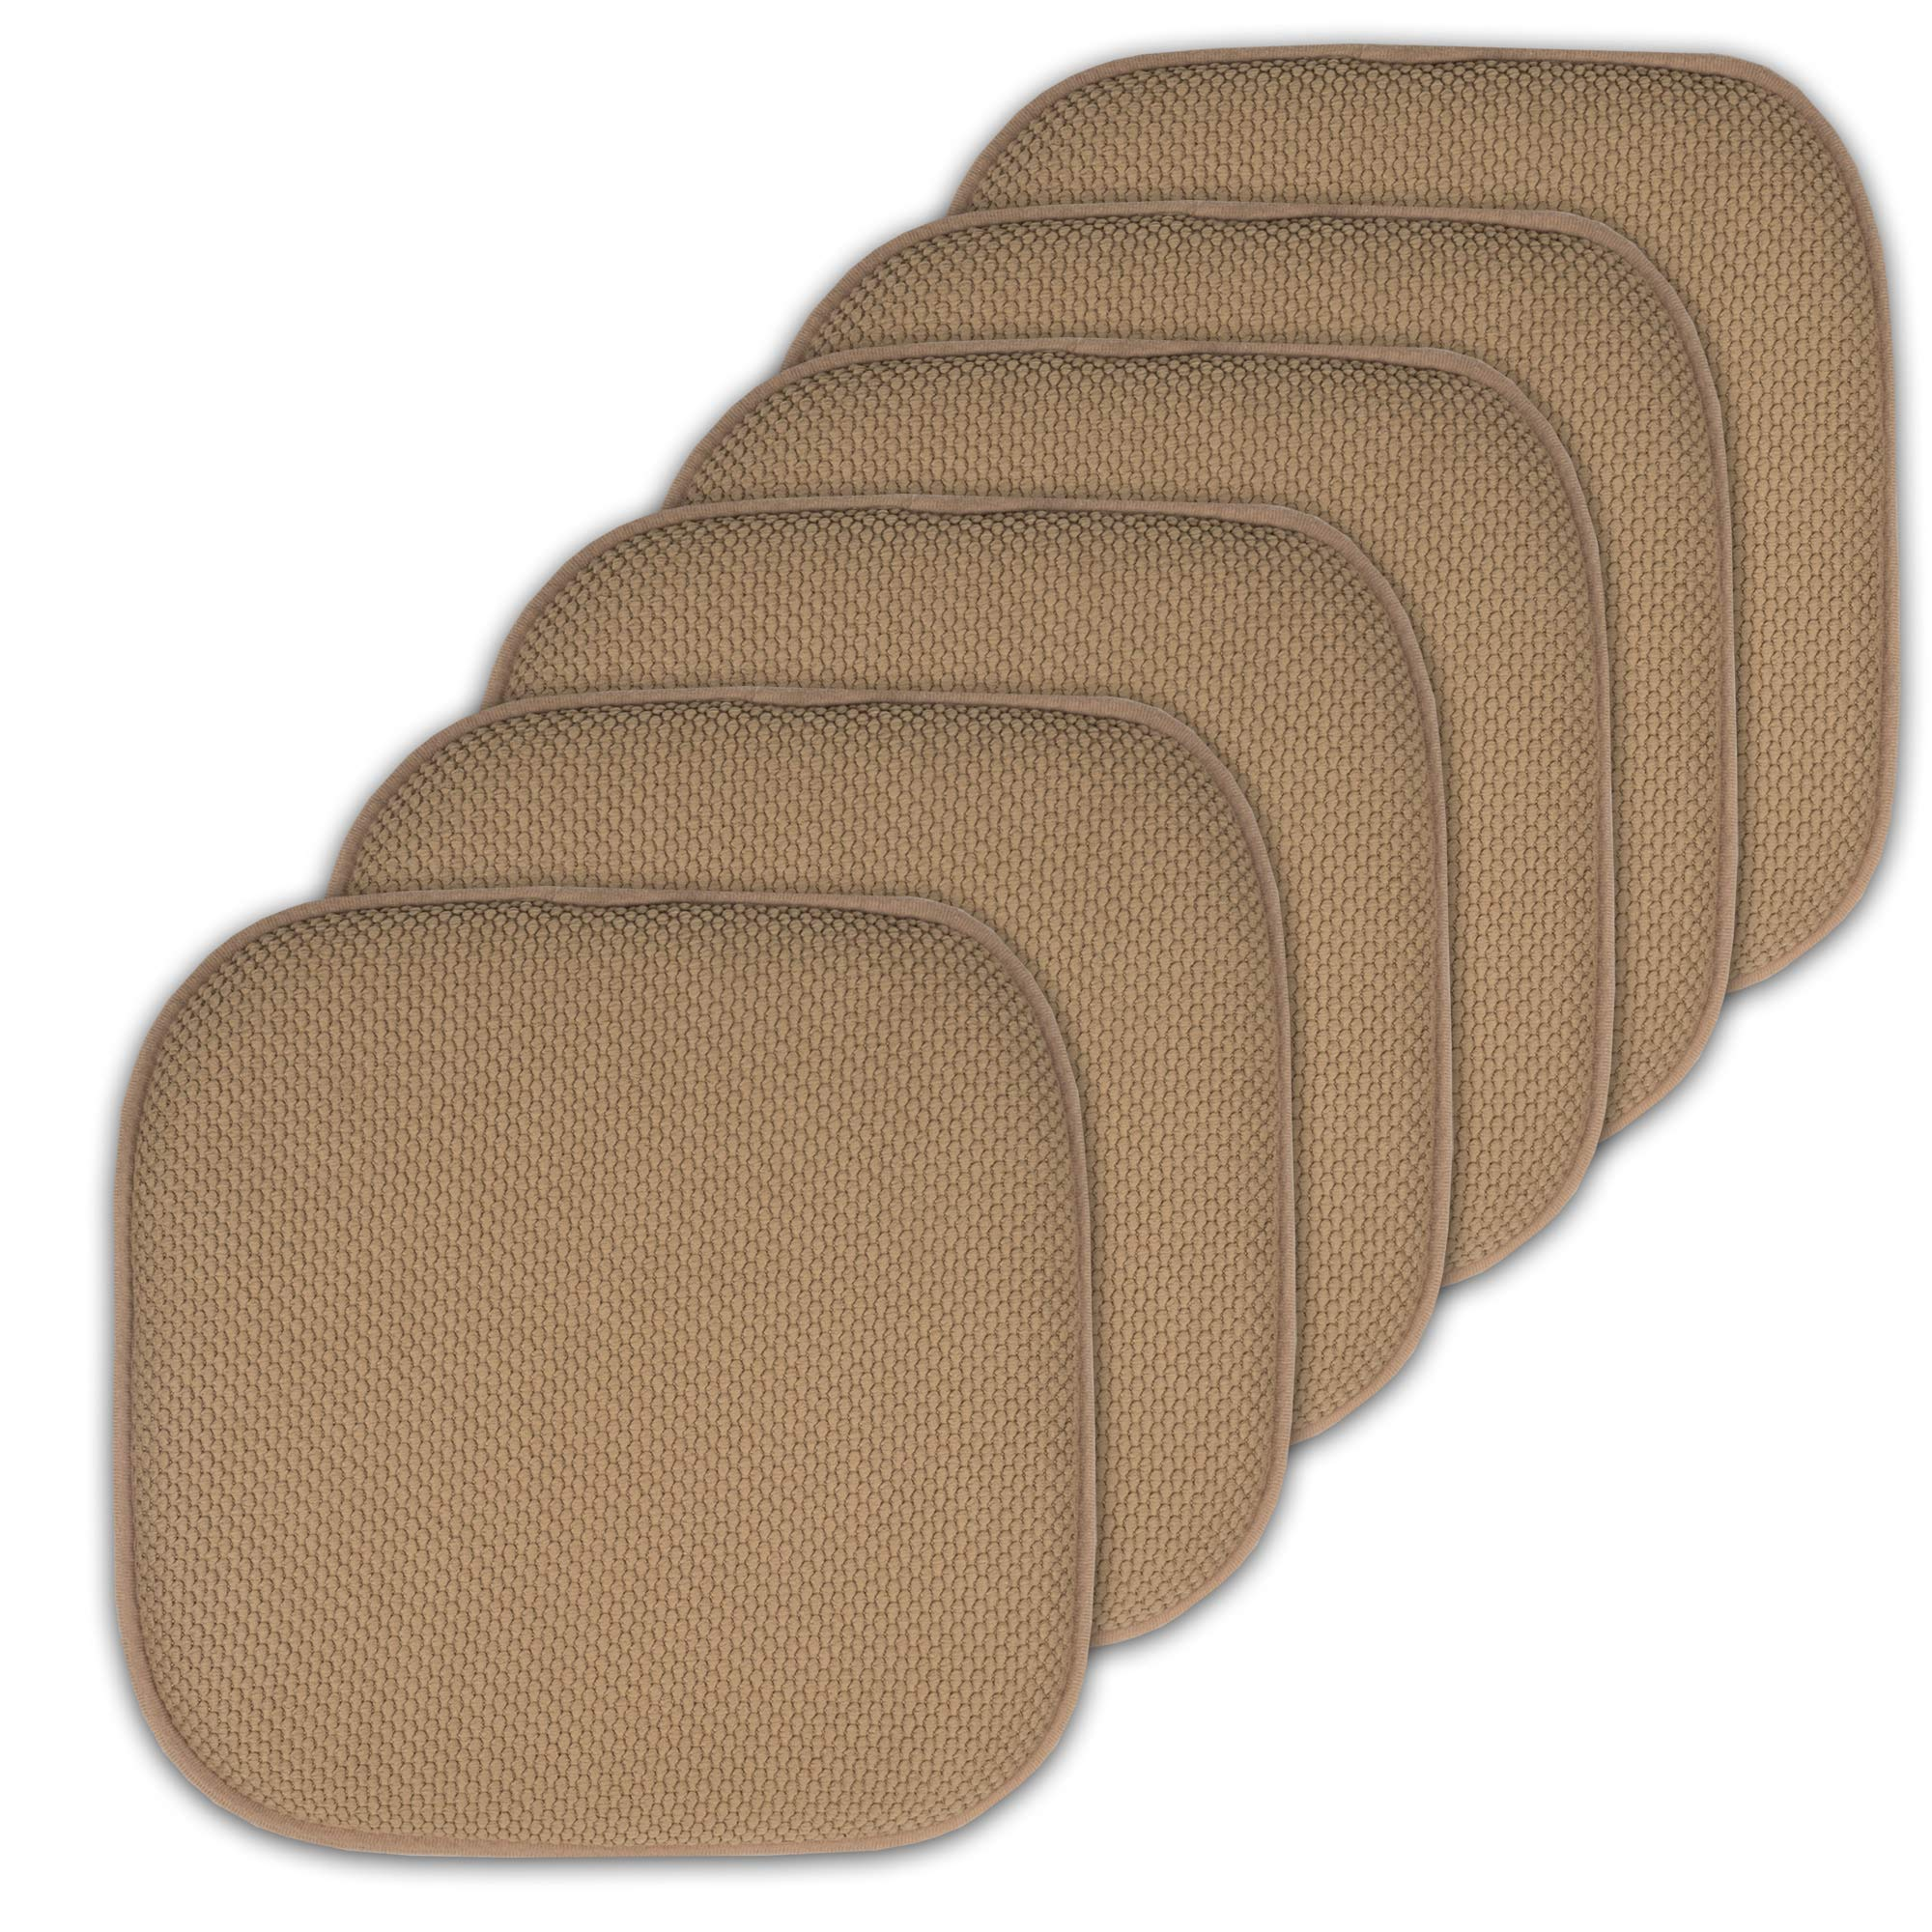 Sweet Home Collection Cushion Memory Foam Chair Pads Honeycomb Nonslip Back Seat Cover 16'' x 16'' 6 Pack Taupe by Sweet Home Collection